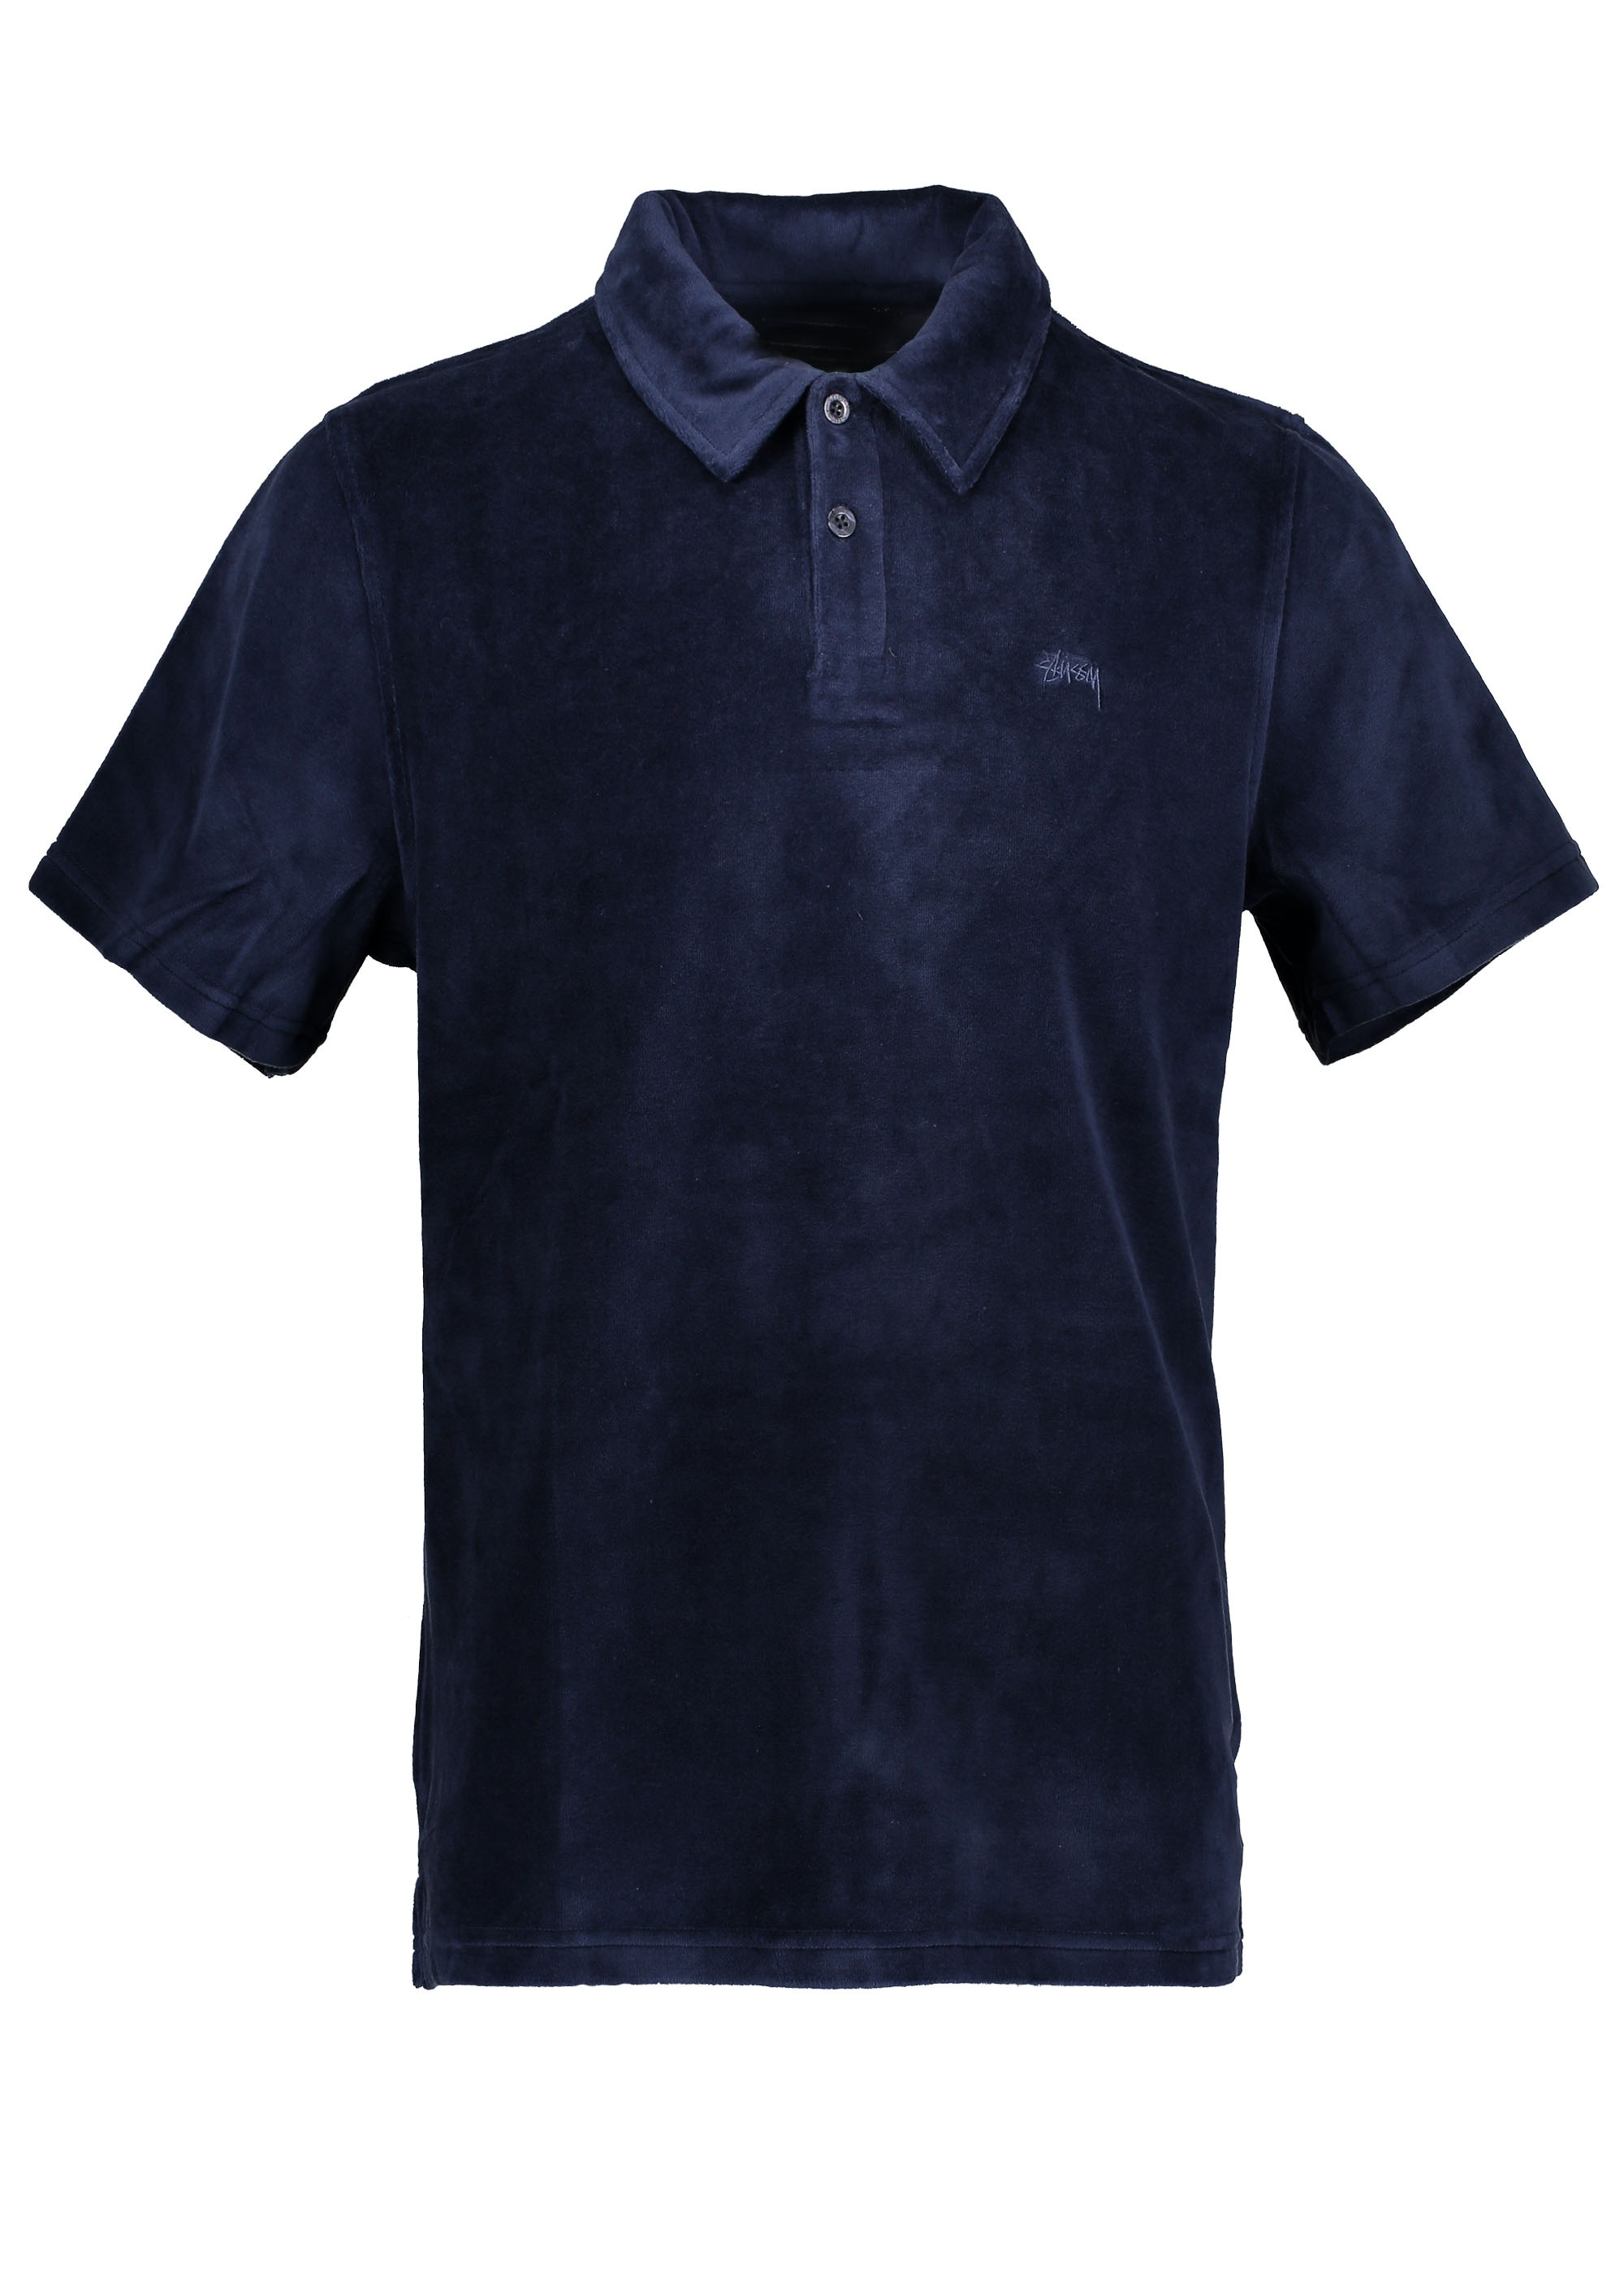 a2a3afb51fa Stussy Victor S SL Polo - Navy - Polo Shirts from Triads UK